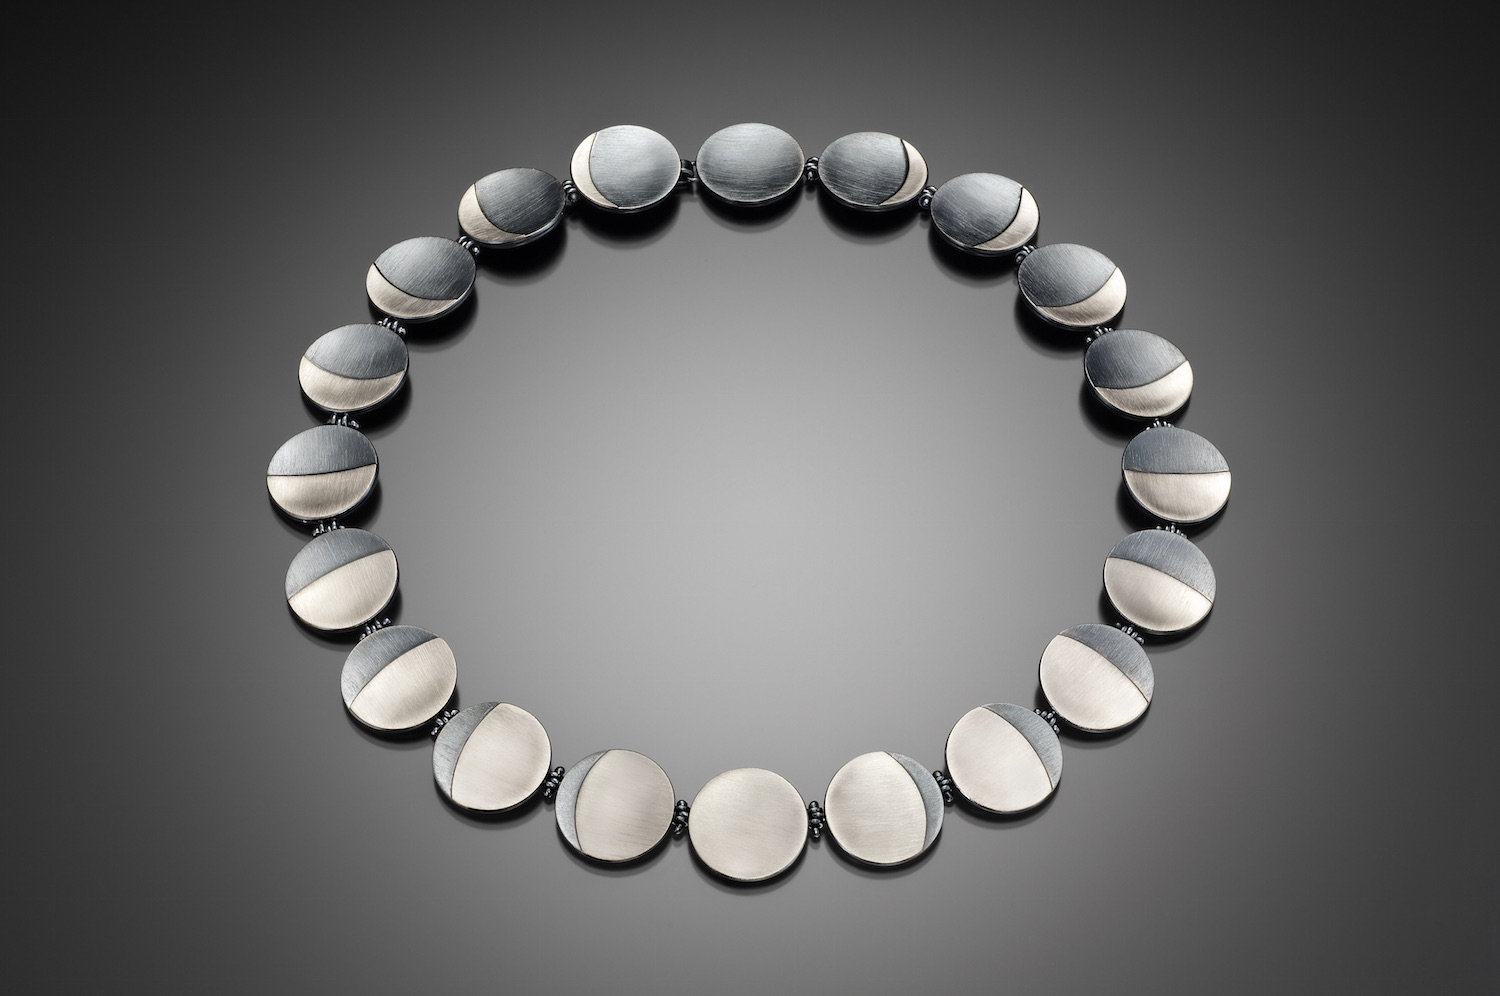 Palladium Phases of the Moon Necklace